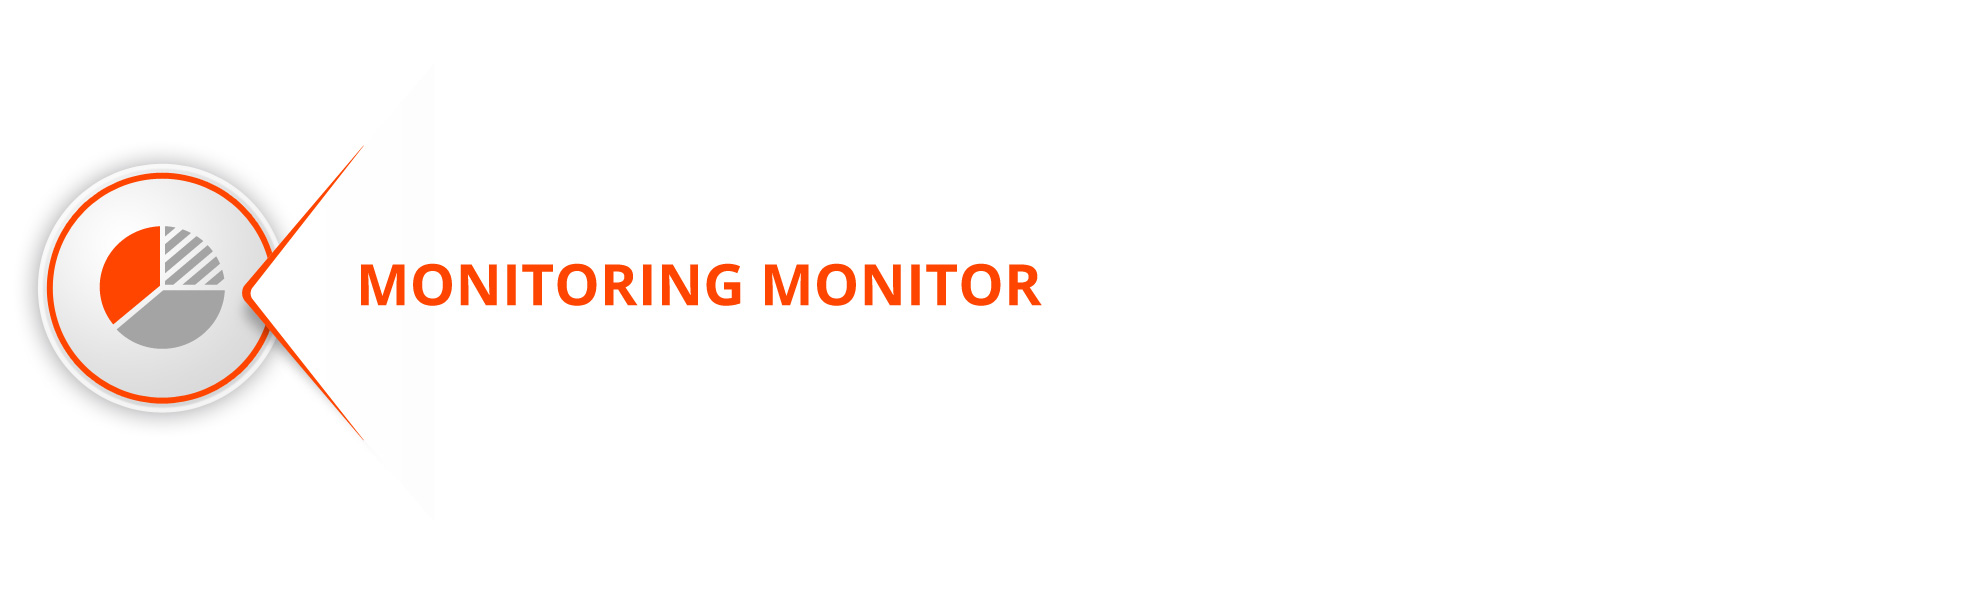 monitoring-monitor-azobit